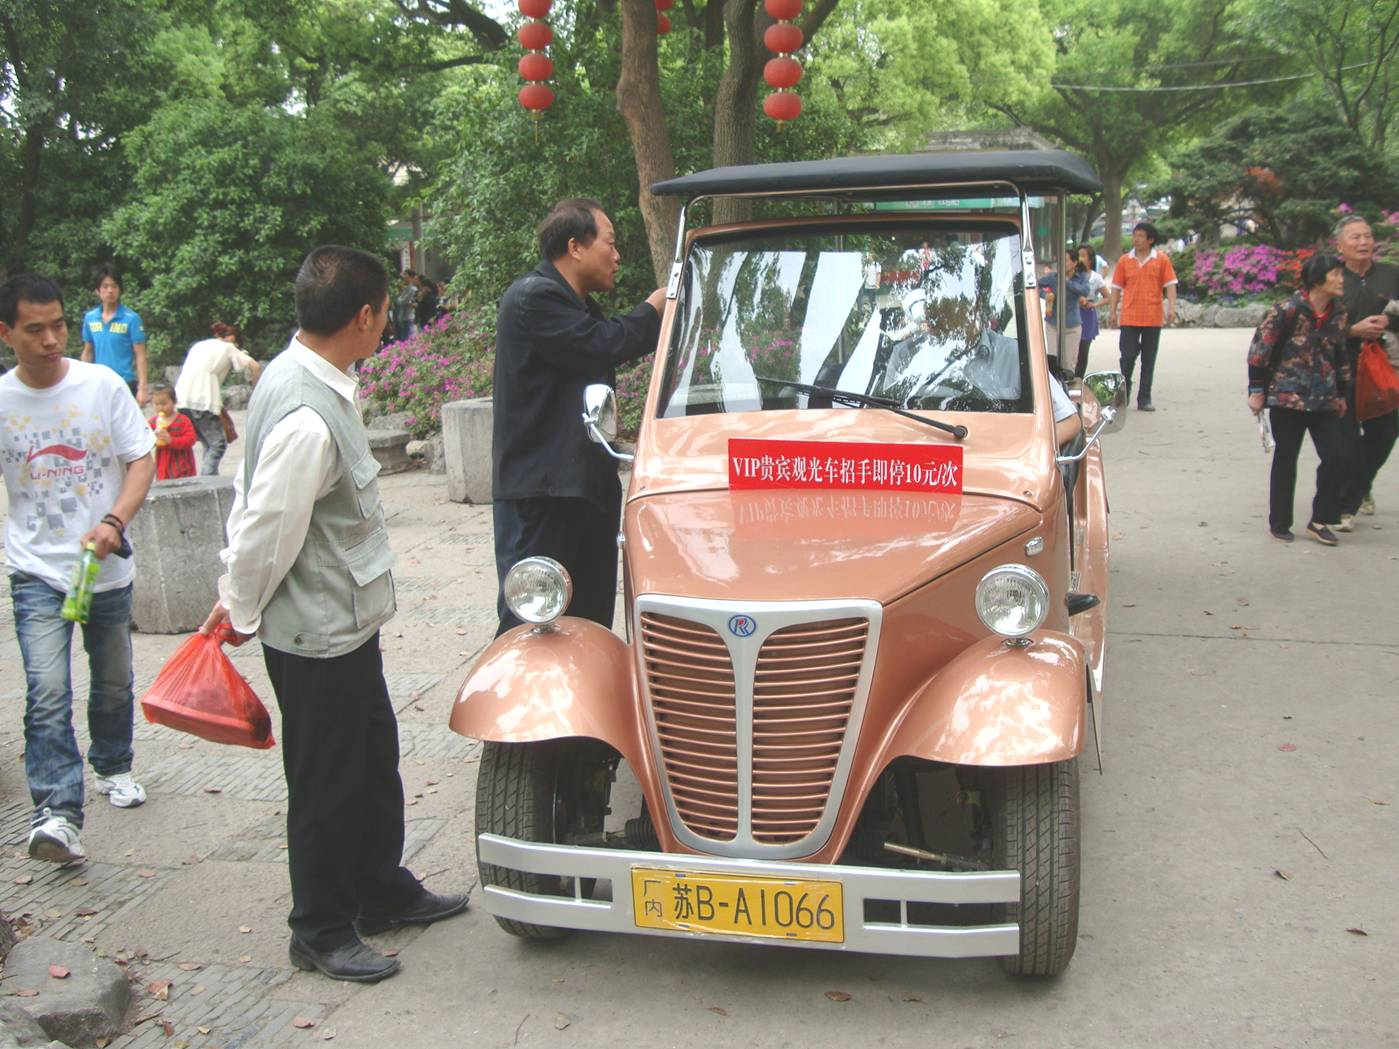 Picture:  Classic styling for the electric people movers in Xi Hui Park,  Wuxi, China